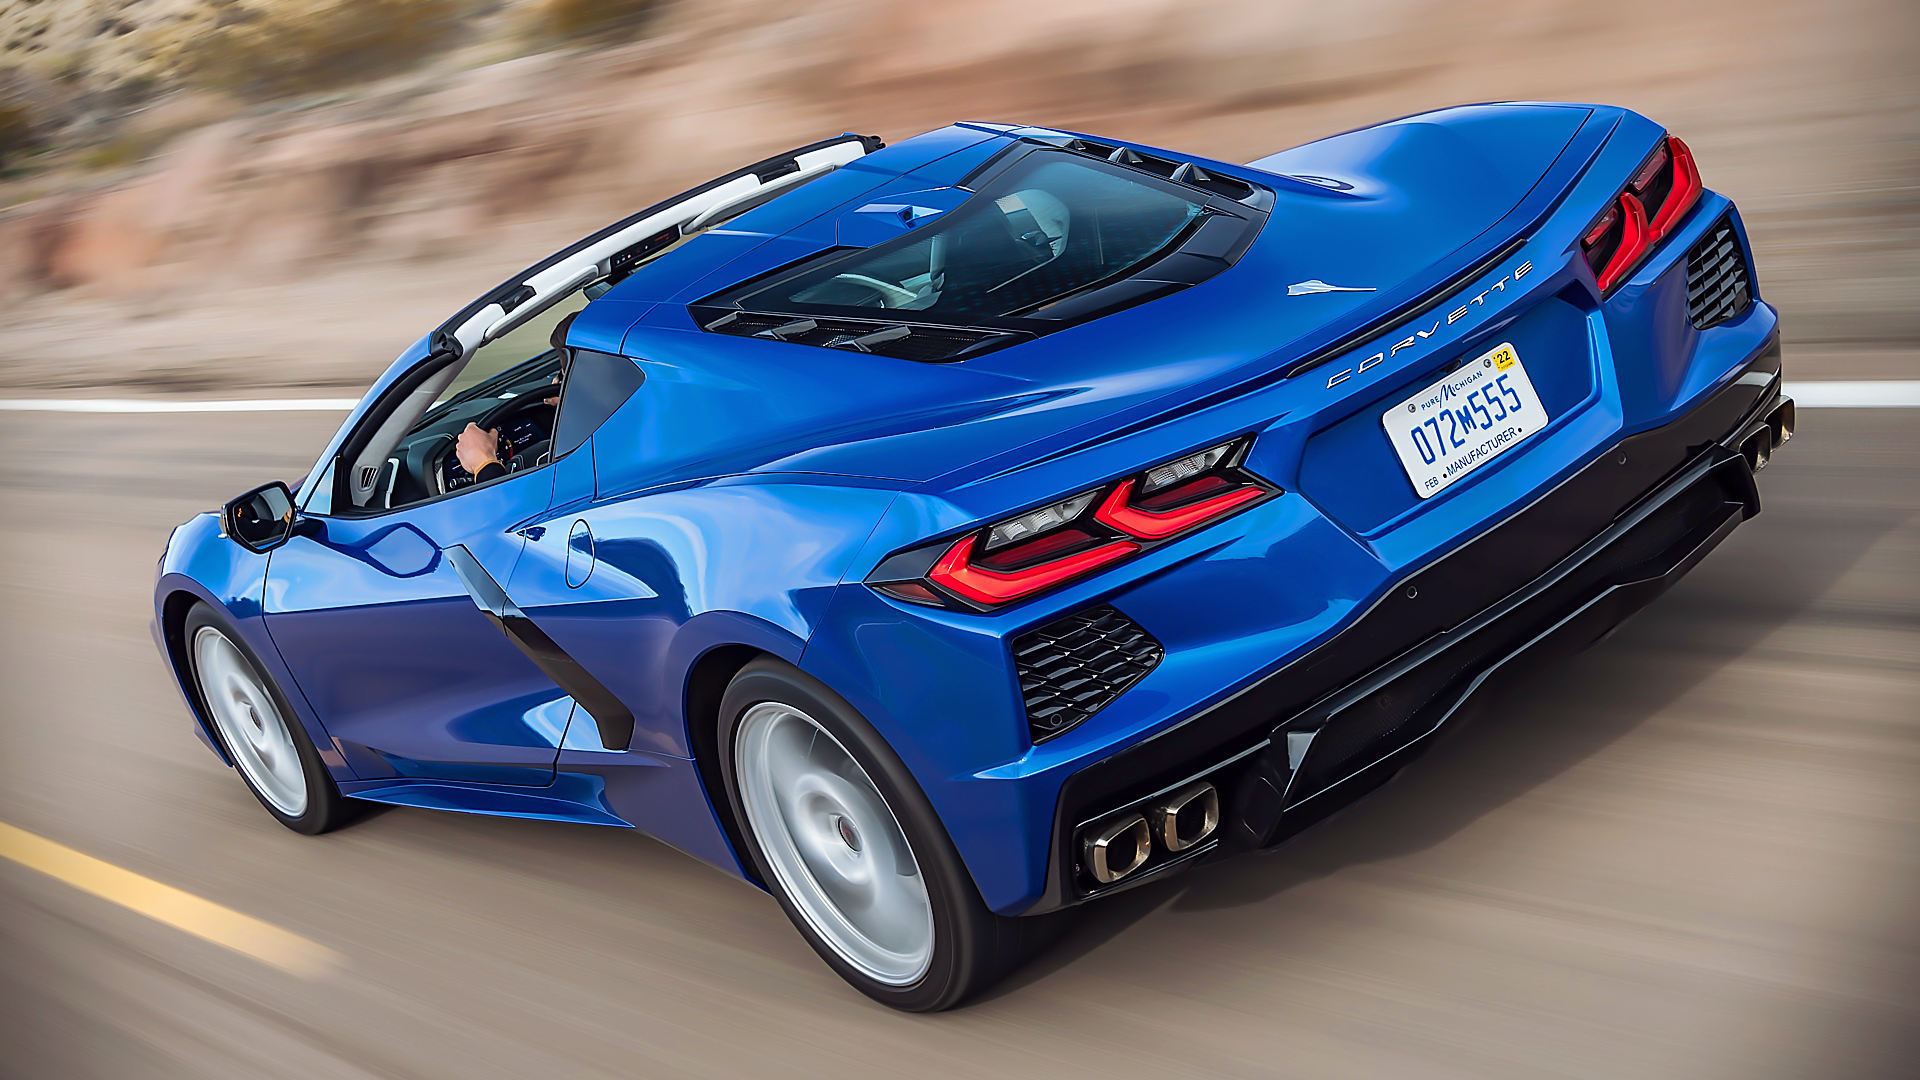 2020 Chevrolet Corvette Stingray C8 Coupe Convertible Wallpaper